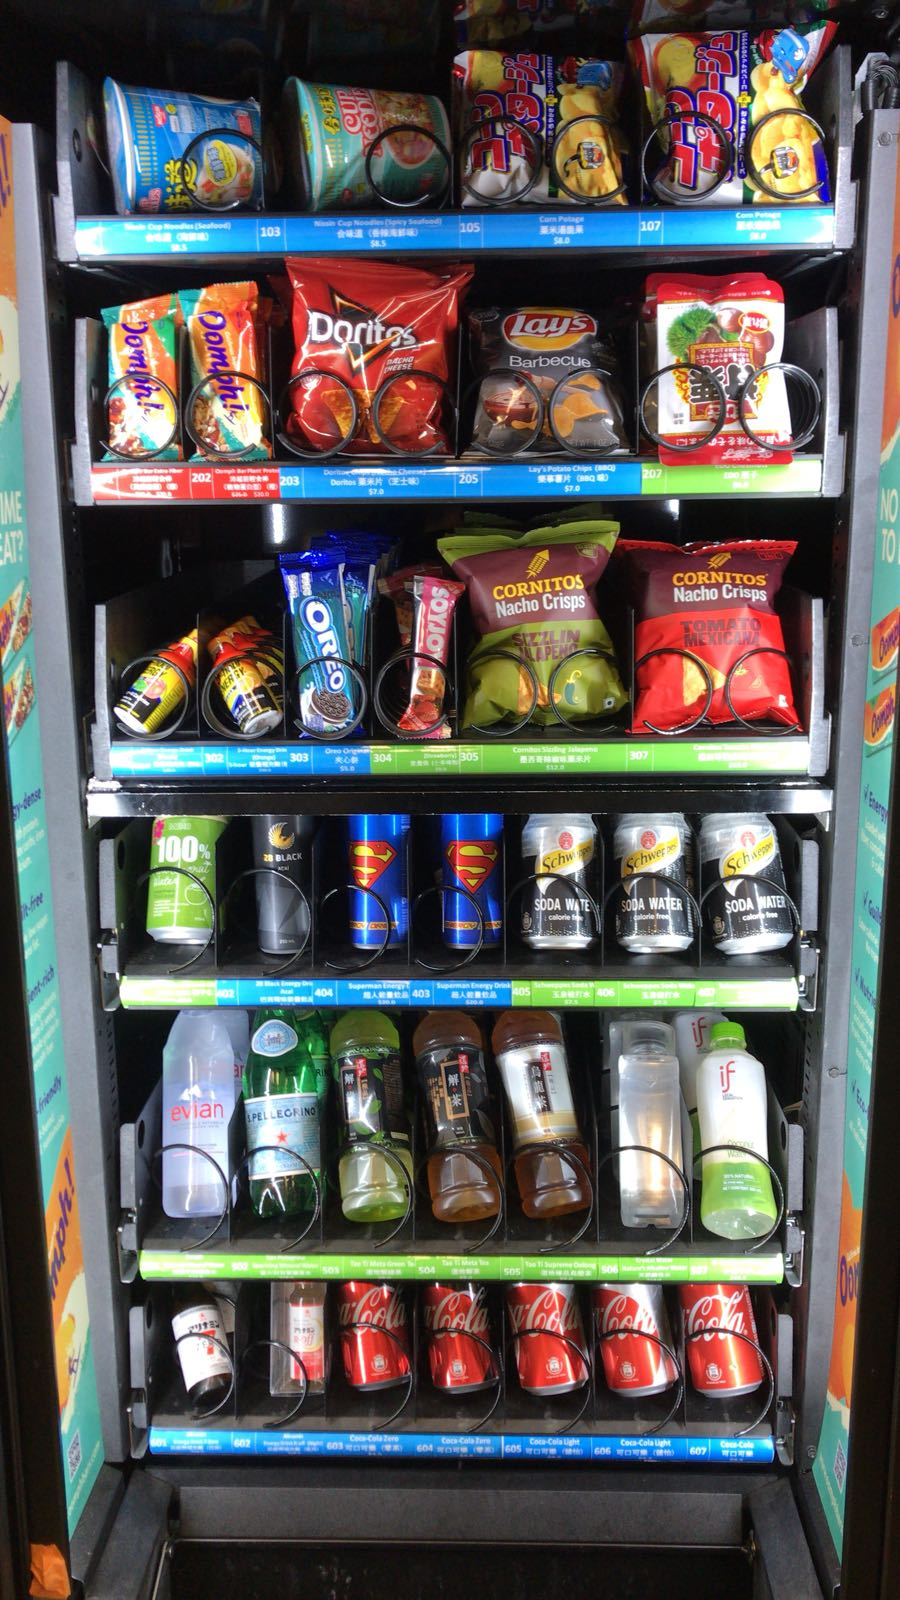 Freshup, vending machine hk, interactive, food, beverage, smart retail, convenient, vending services, professional, investment banks, nomura